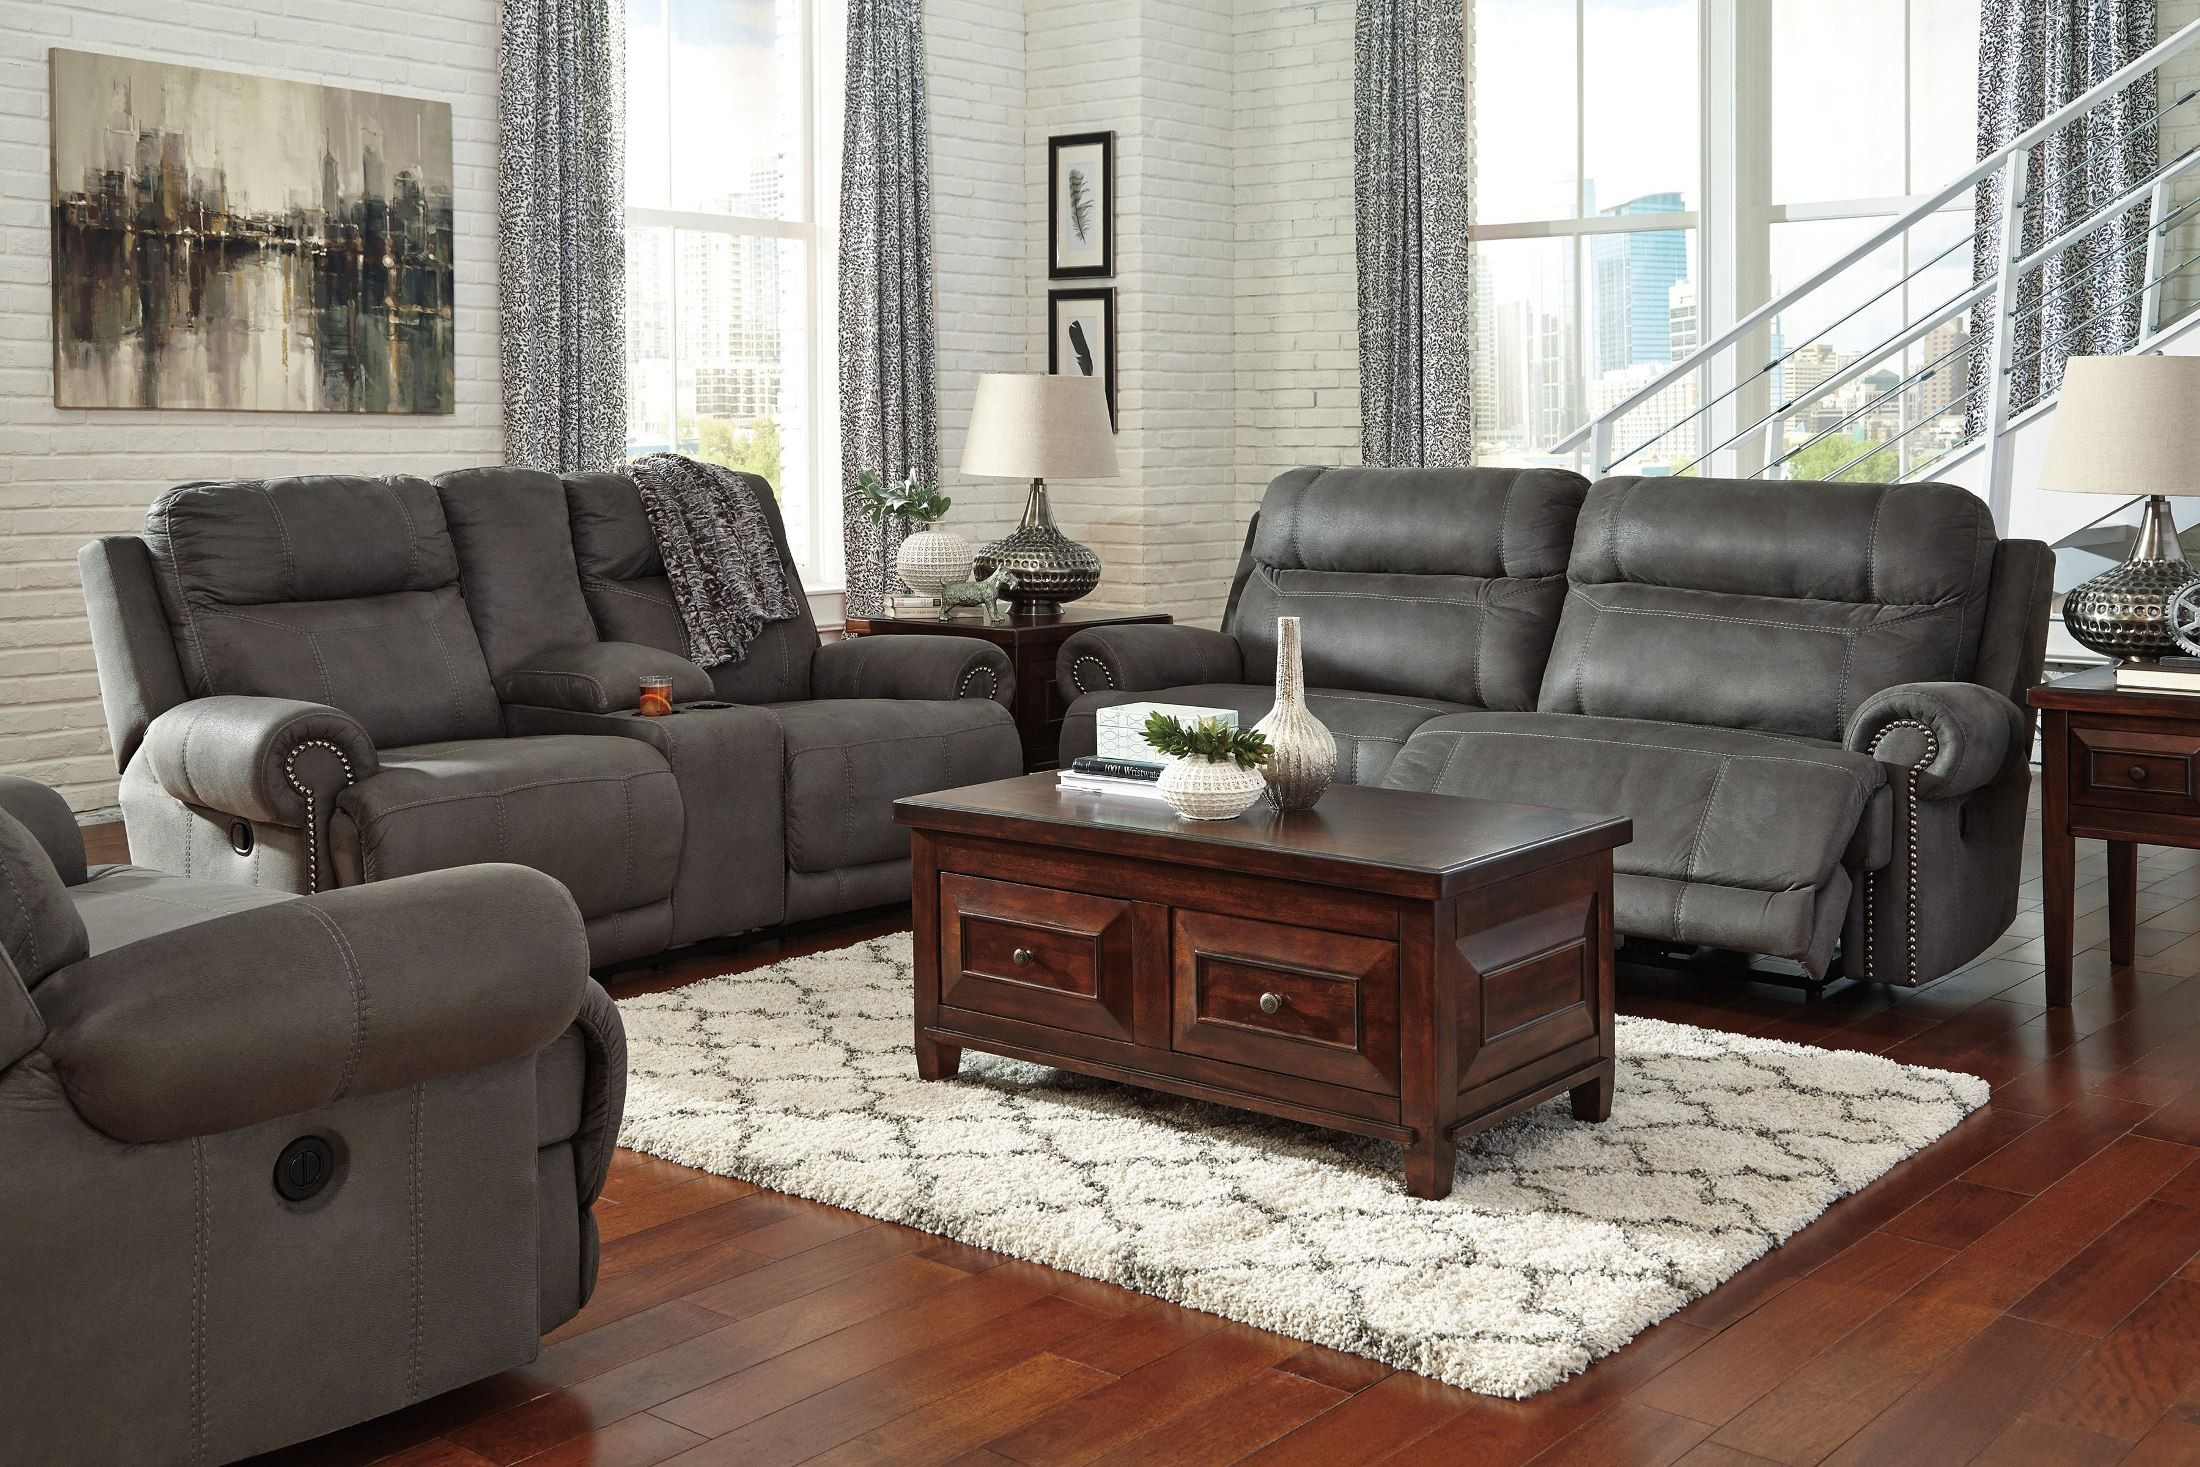 Sofa Set Sale In Jamshedpur Austere Gray Power Reclining Living Room Set From Ashley